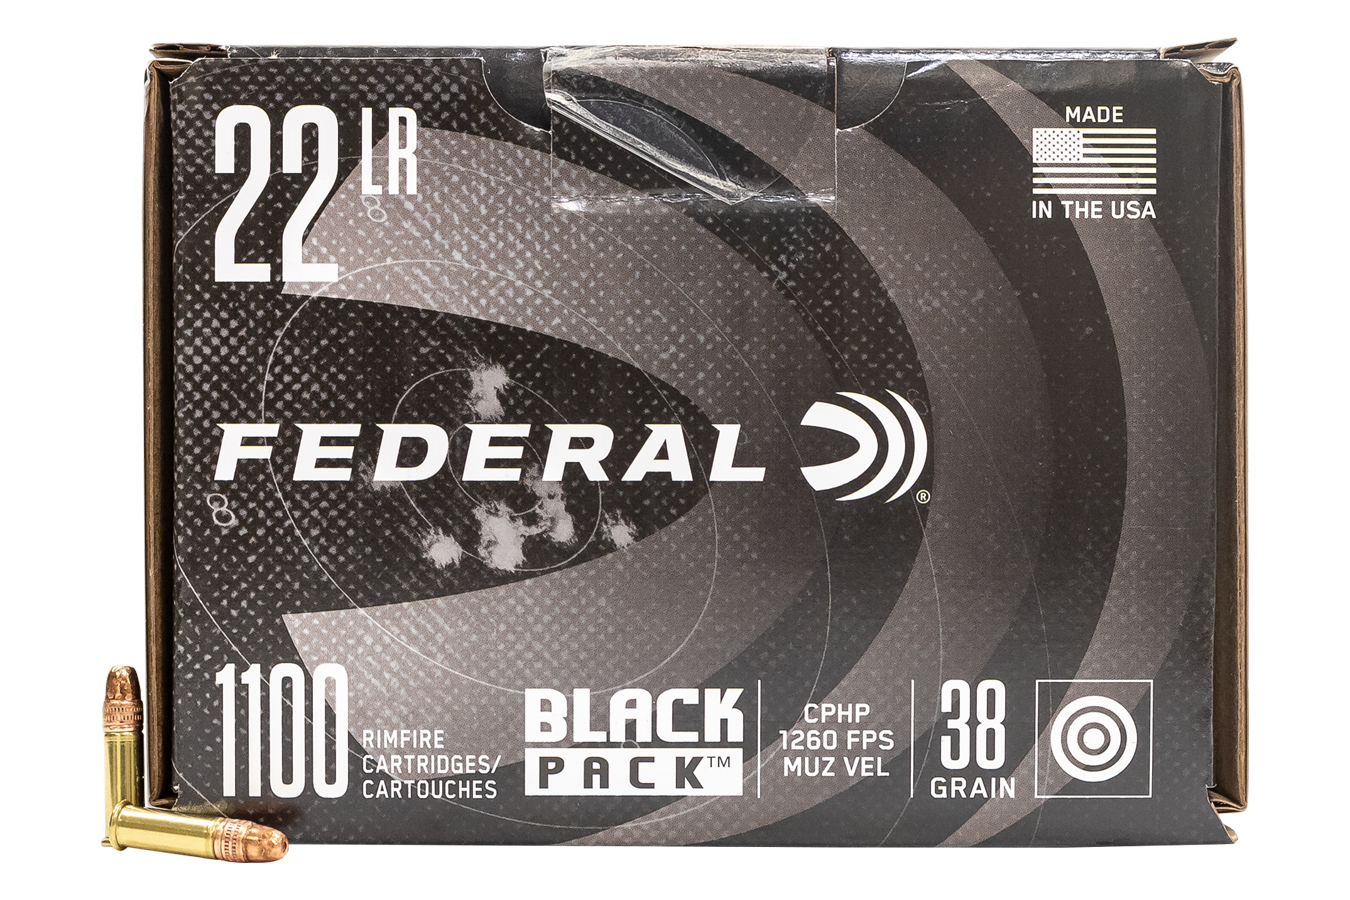 BLACK PACK 22LR 38GR CPHP 1100 ROUNDS